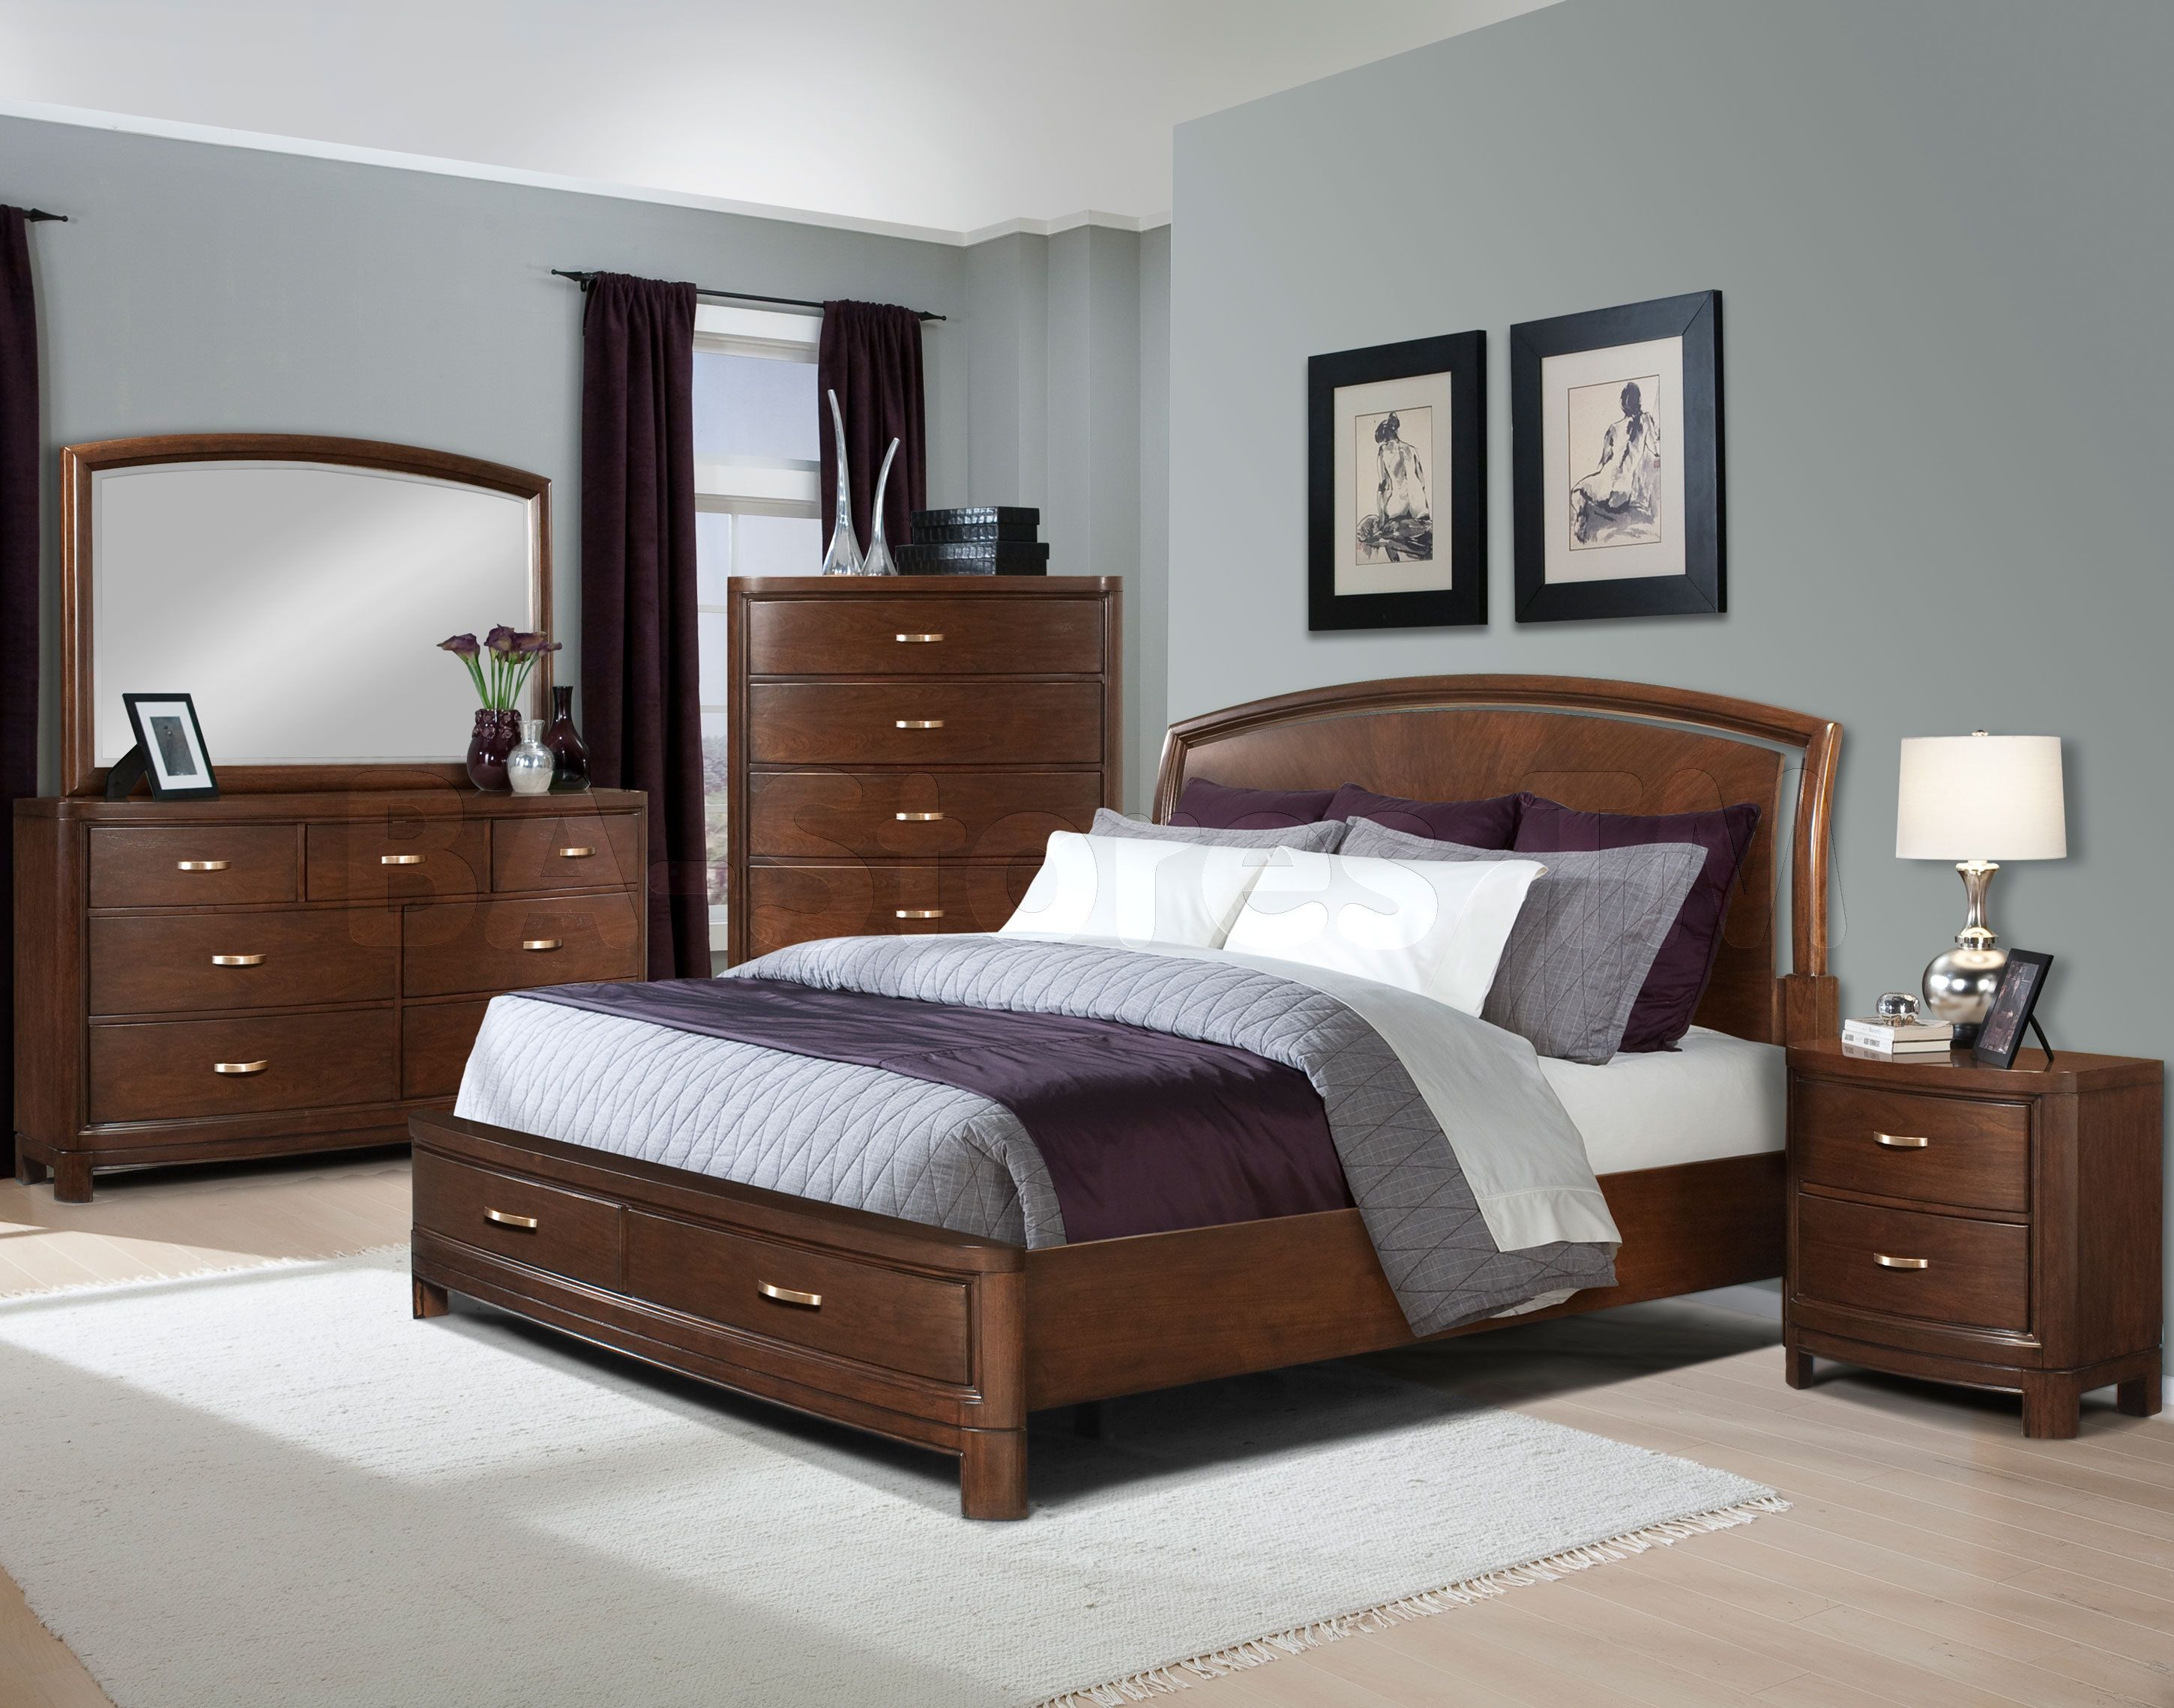 Contemporary bedroom with dark wood bed google search bed 5 pinterest dark wood bed Master bedroom with grey furniture